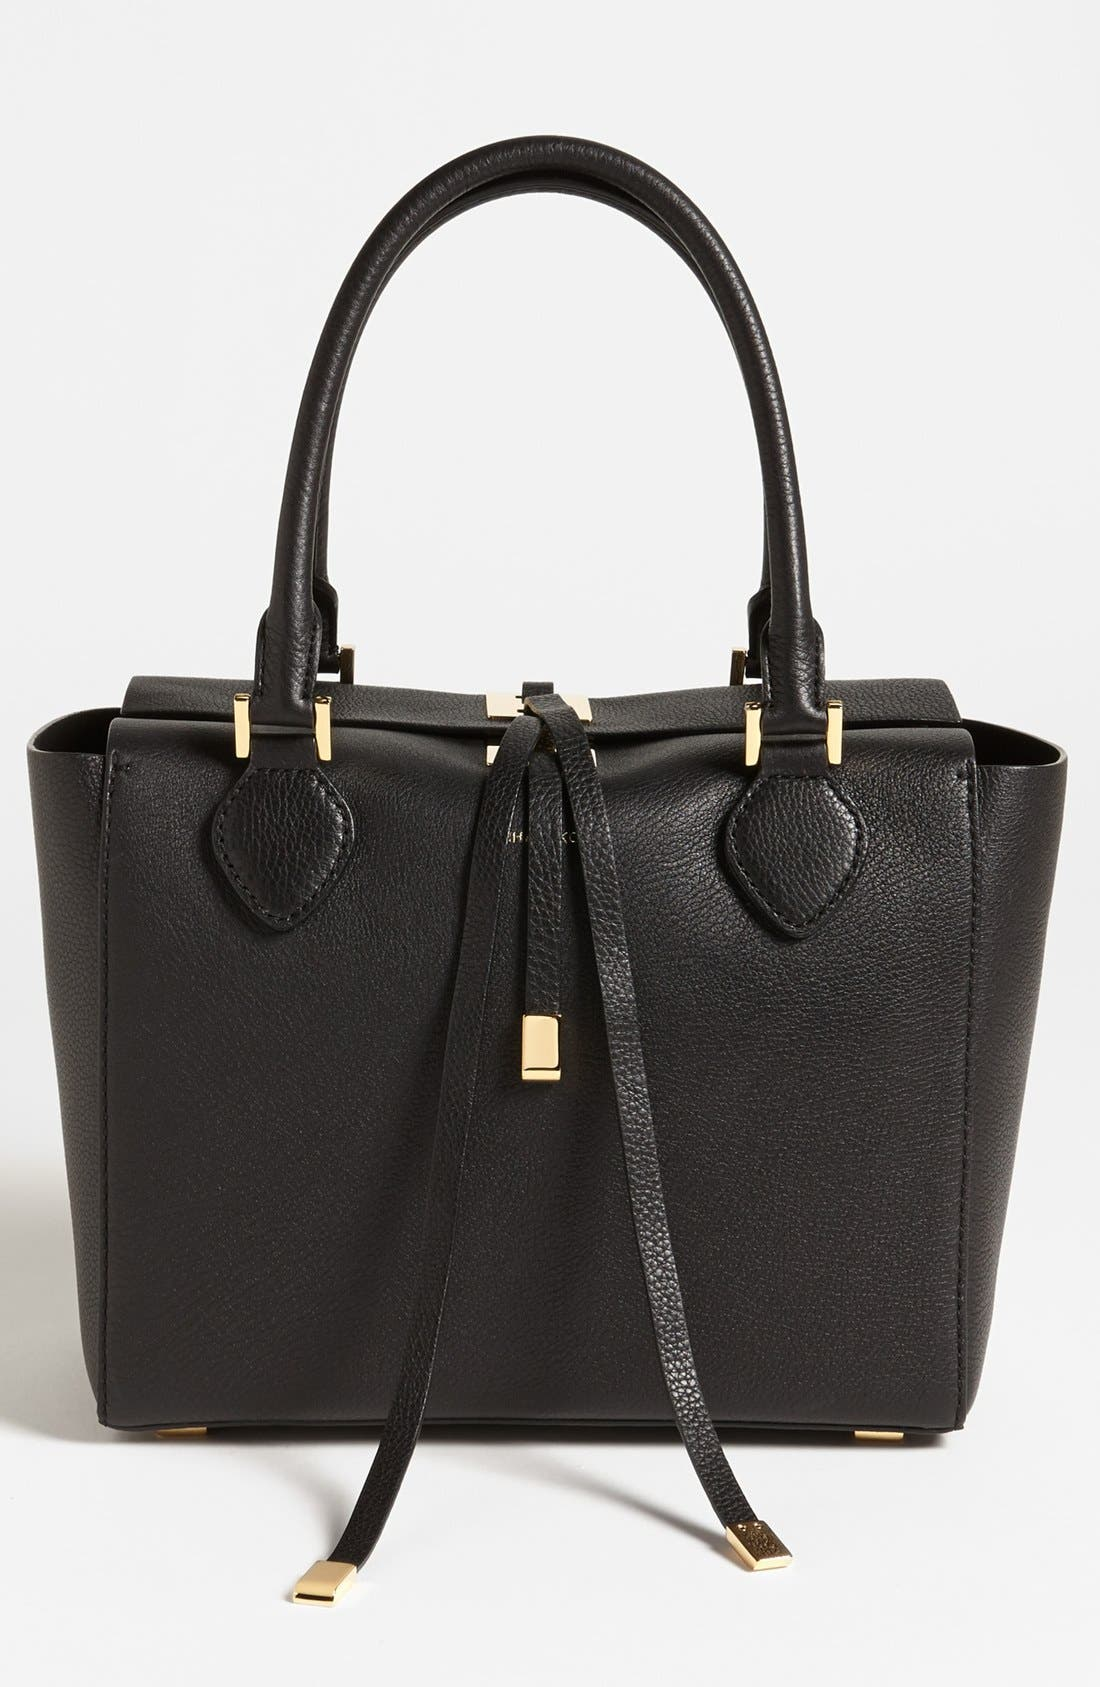 Alternate Image 1 Selected - Michael Kors 'Miranda' Tote